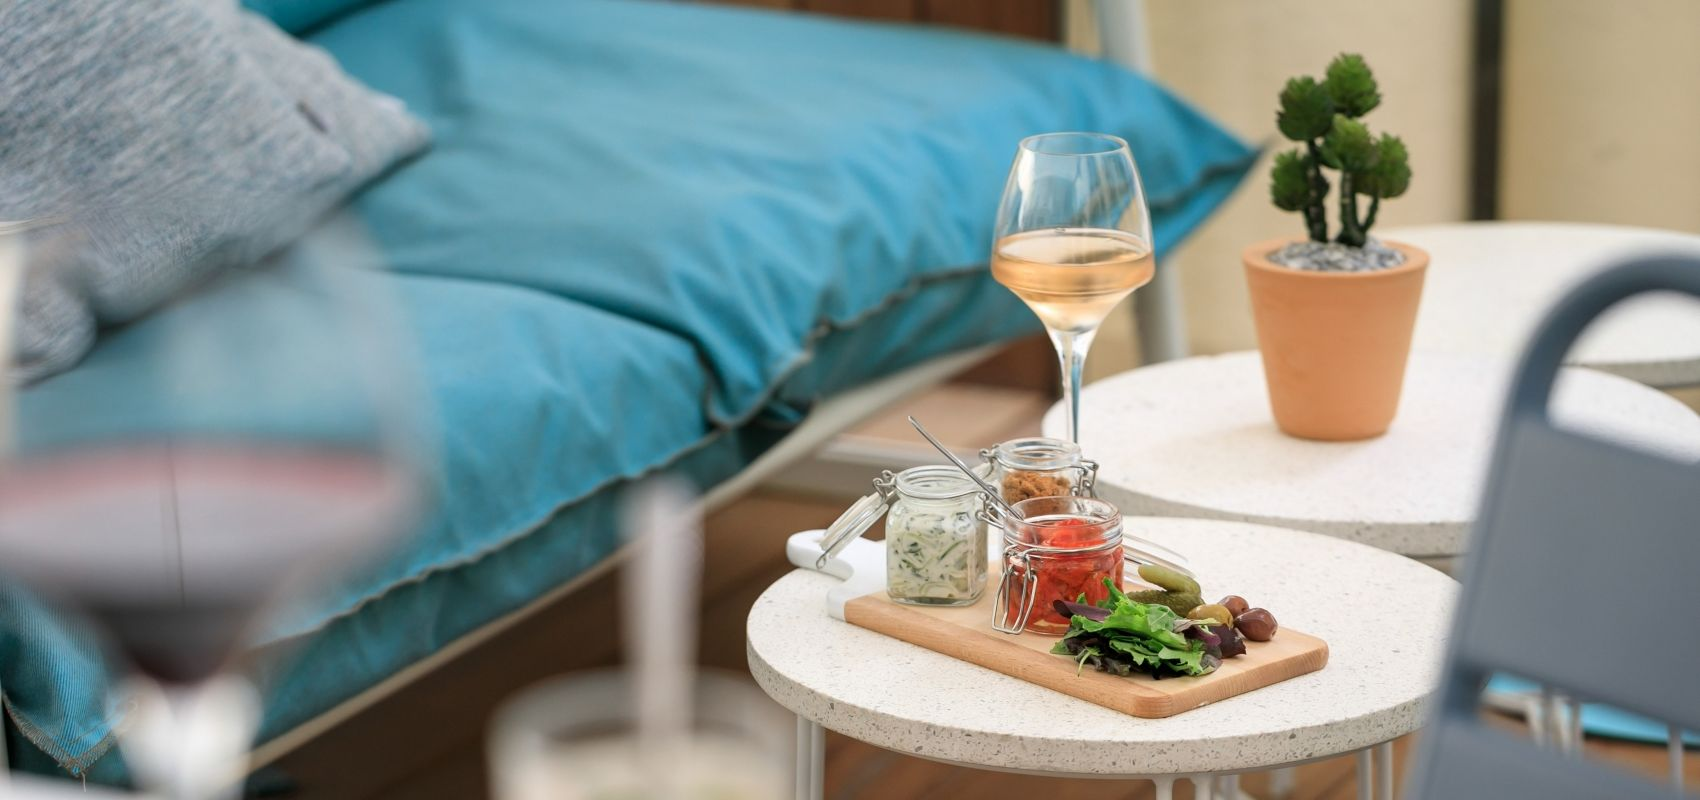 The Deck Hotel by HappyCulture - Salon